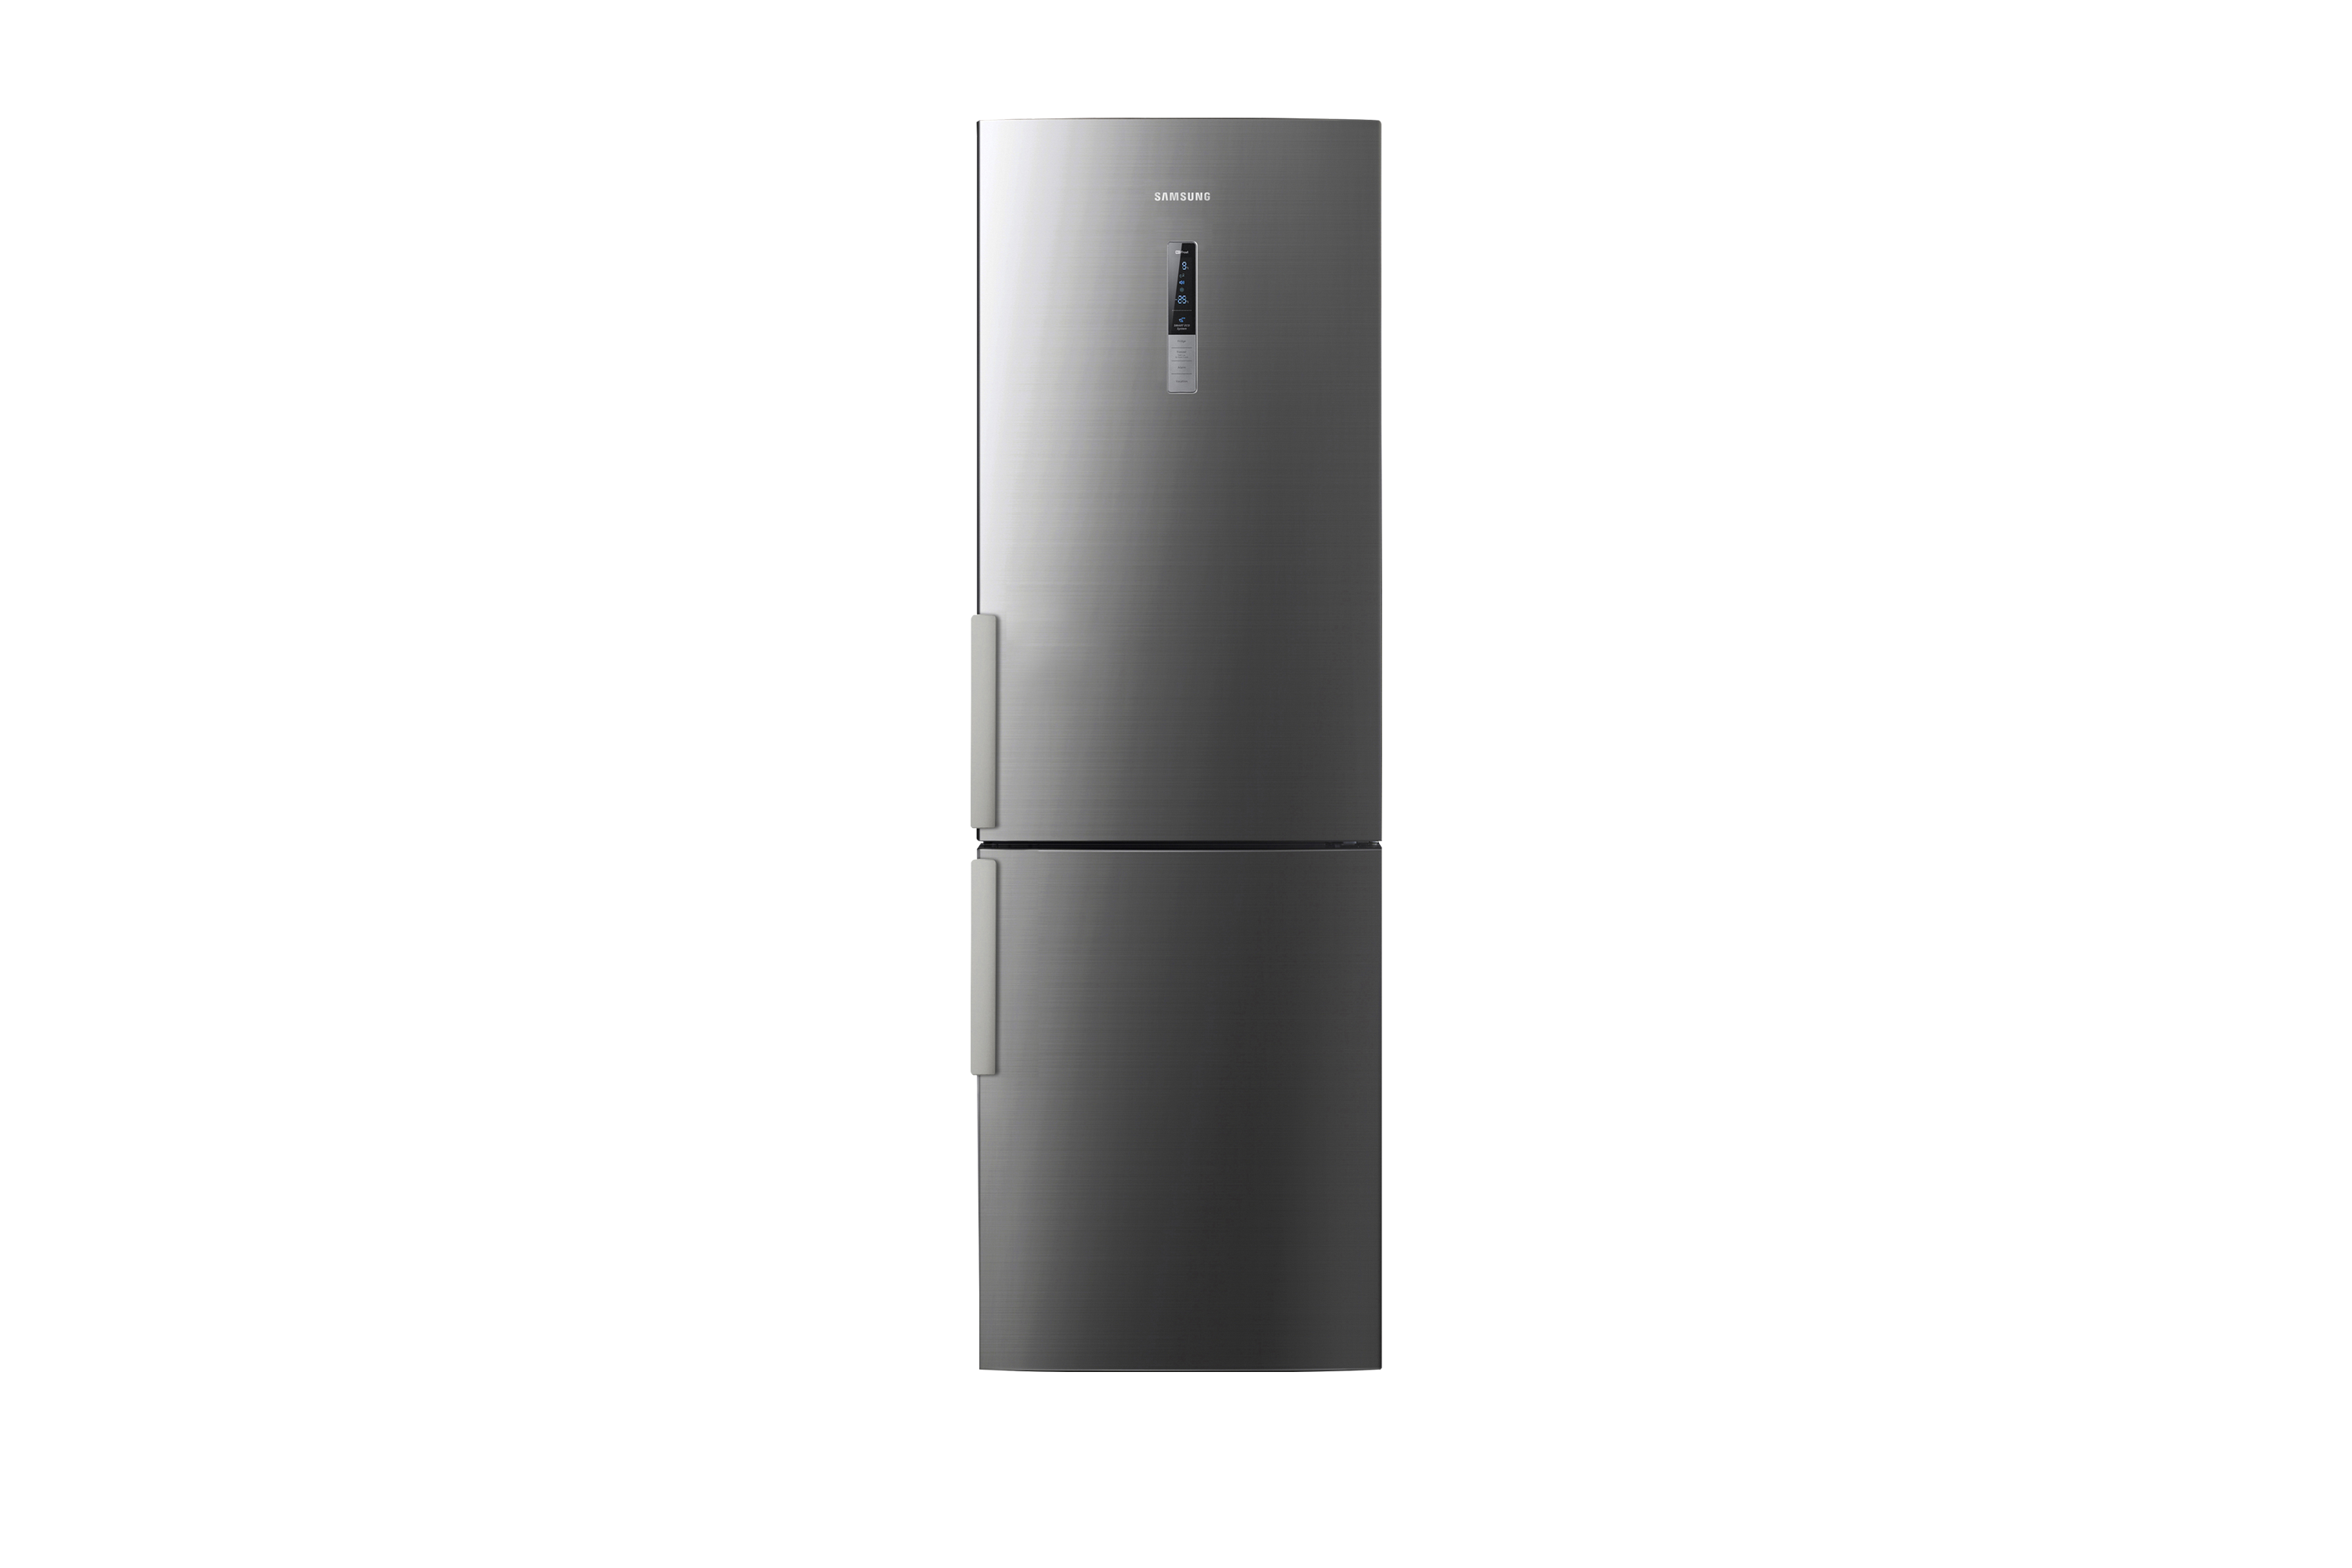 G-Series Fridge Freezer with SpaceMax Technology, 357 L